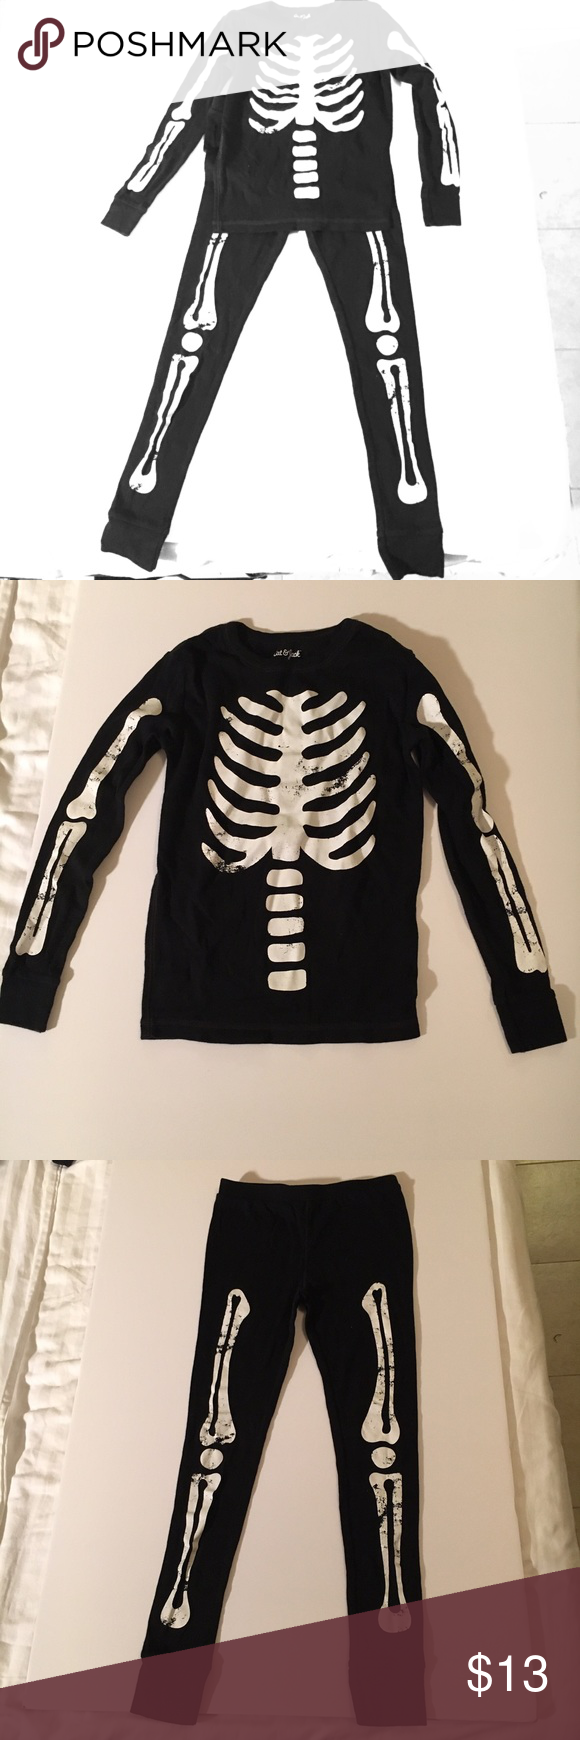 ??Boys skeleton Cat u0026 Jack pajama set top + bottom ??Boys skeleton Cat u0026 & ??Boys skeleton Cat u0026 Jack pajama set top + bottom ??Boys ...